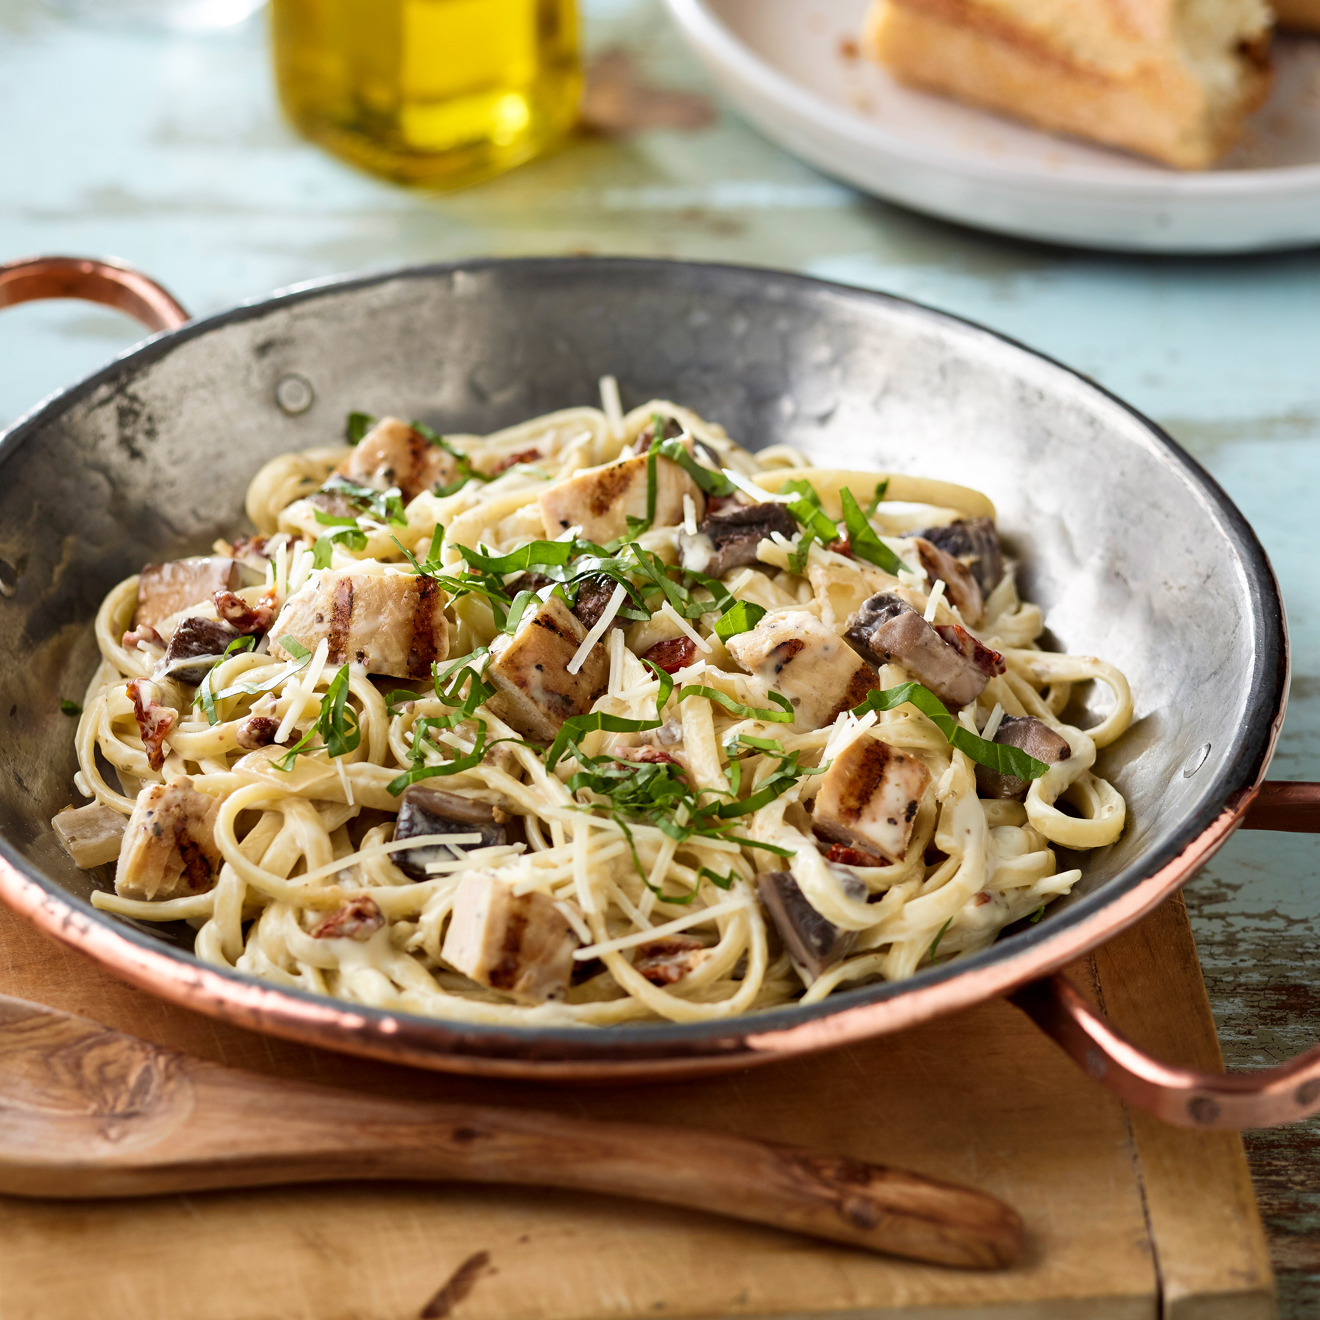 Linguine with Roasted Garlic, Mushrooms, & Chicken